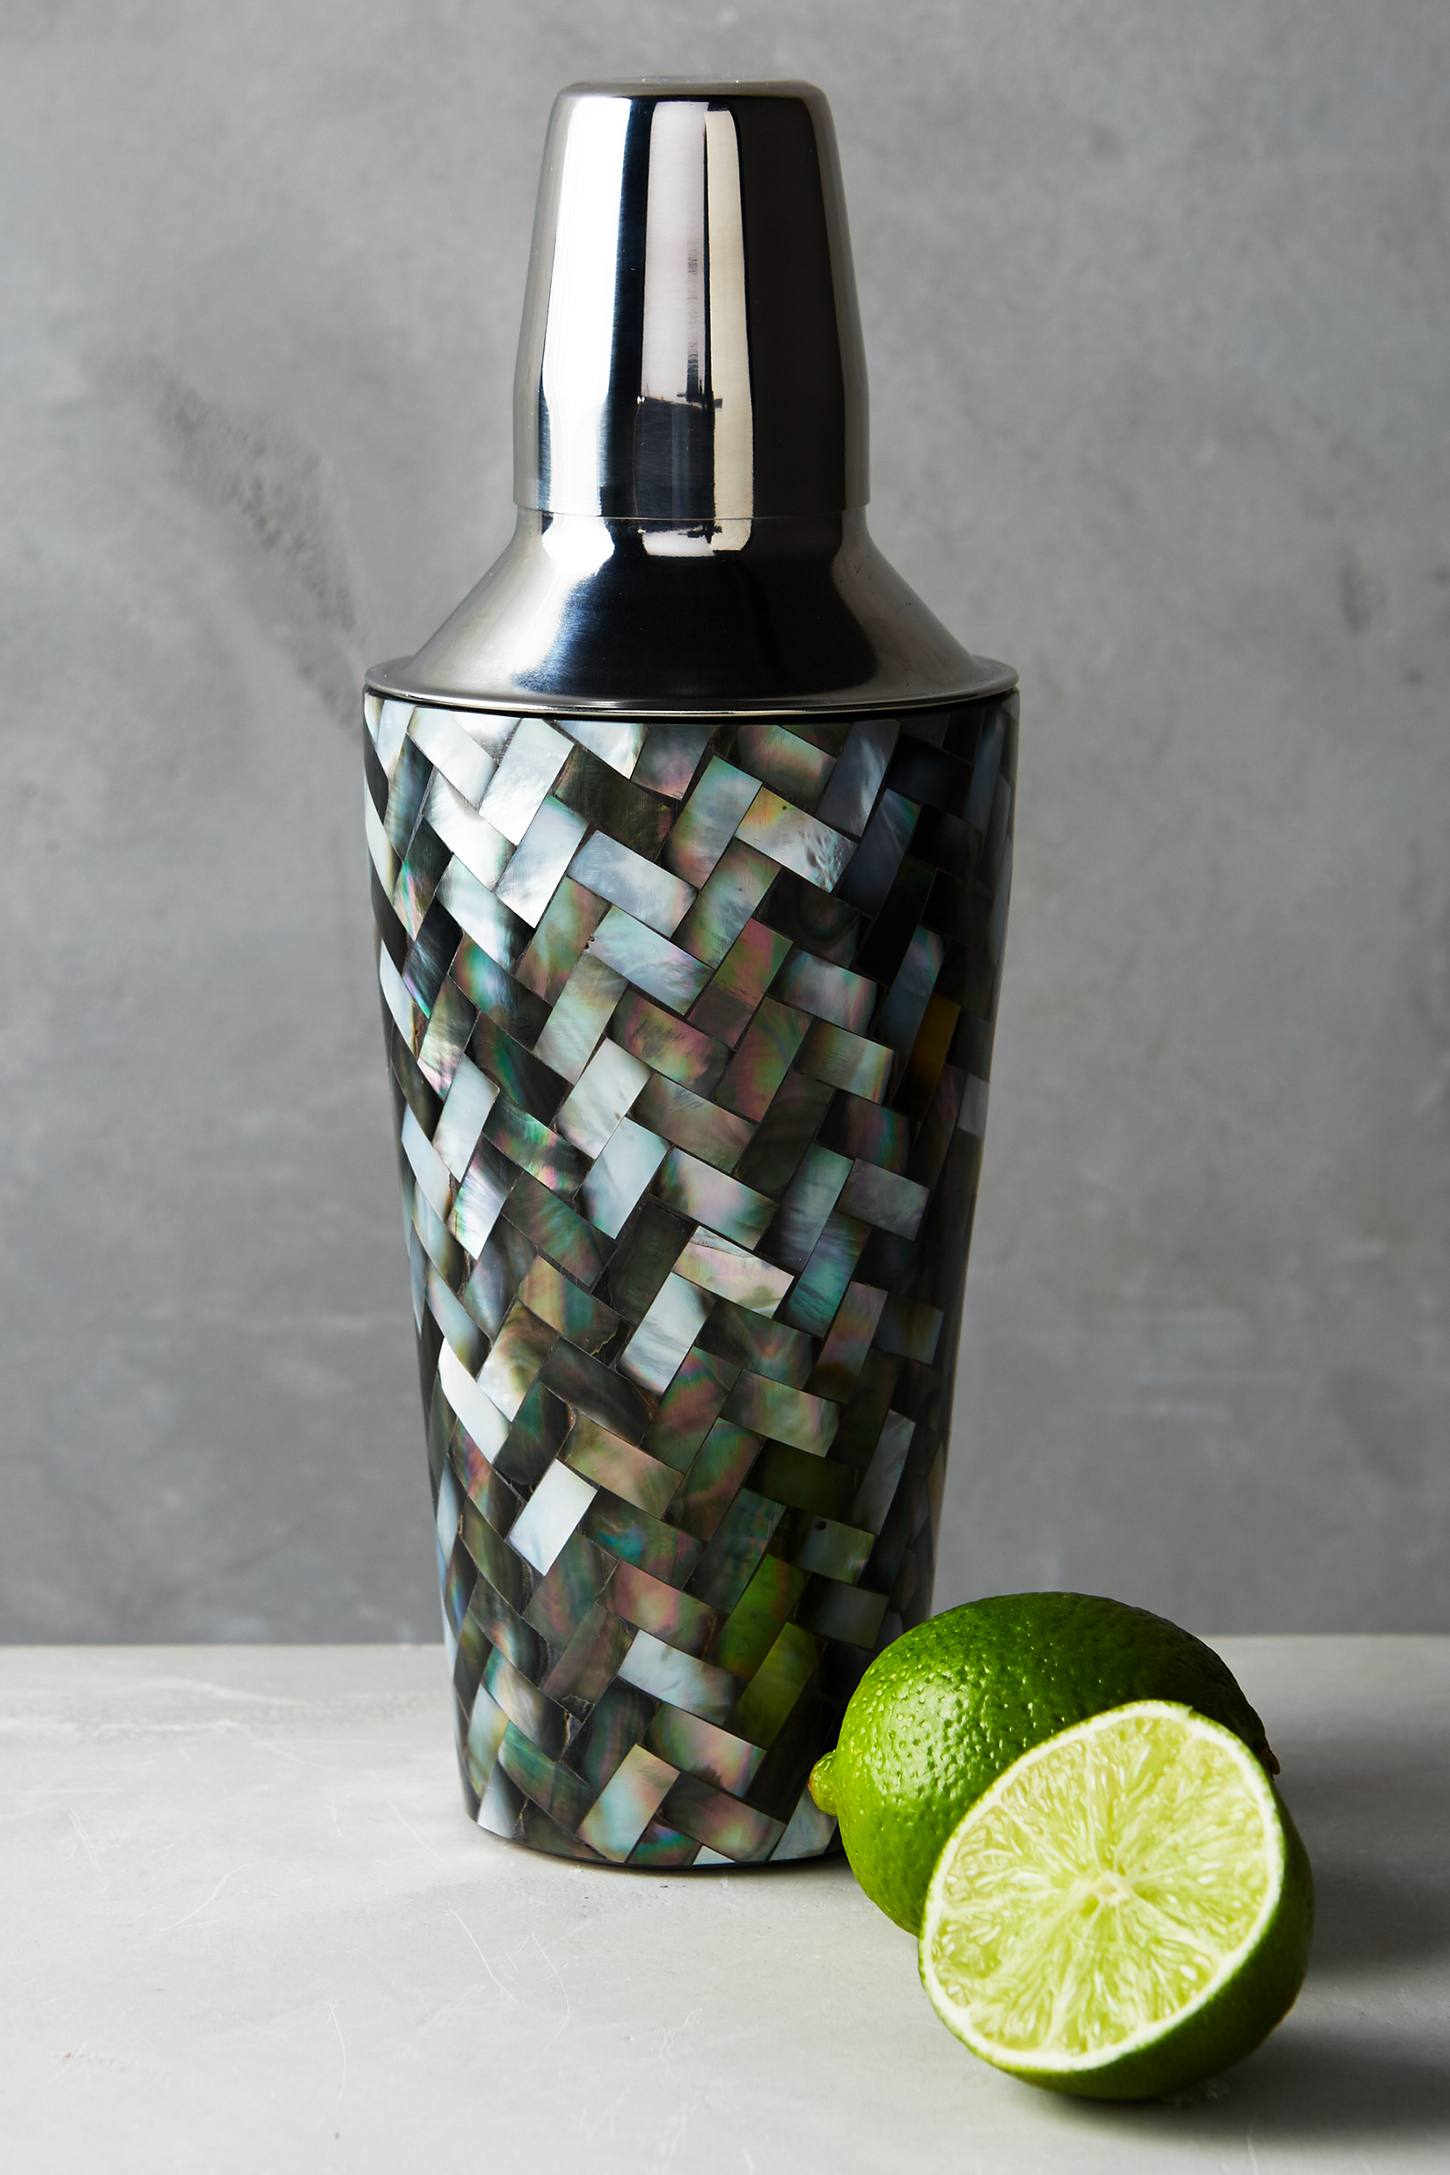 Tiled Nacre Cocktail Shaker